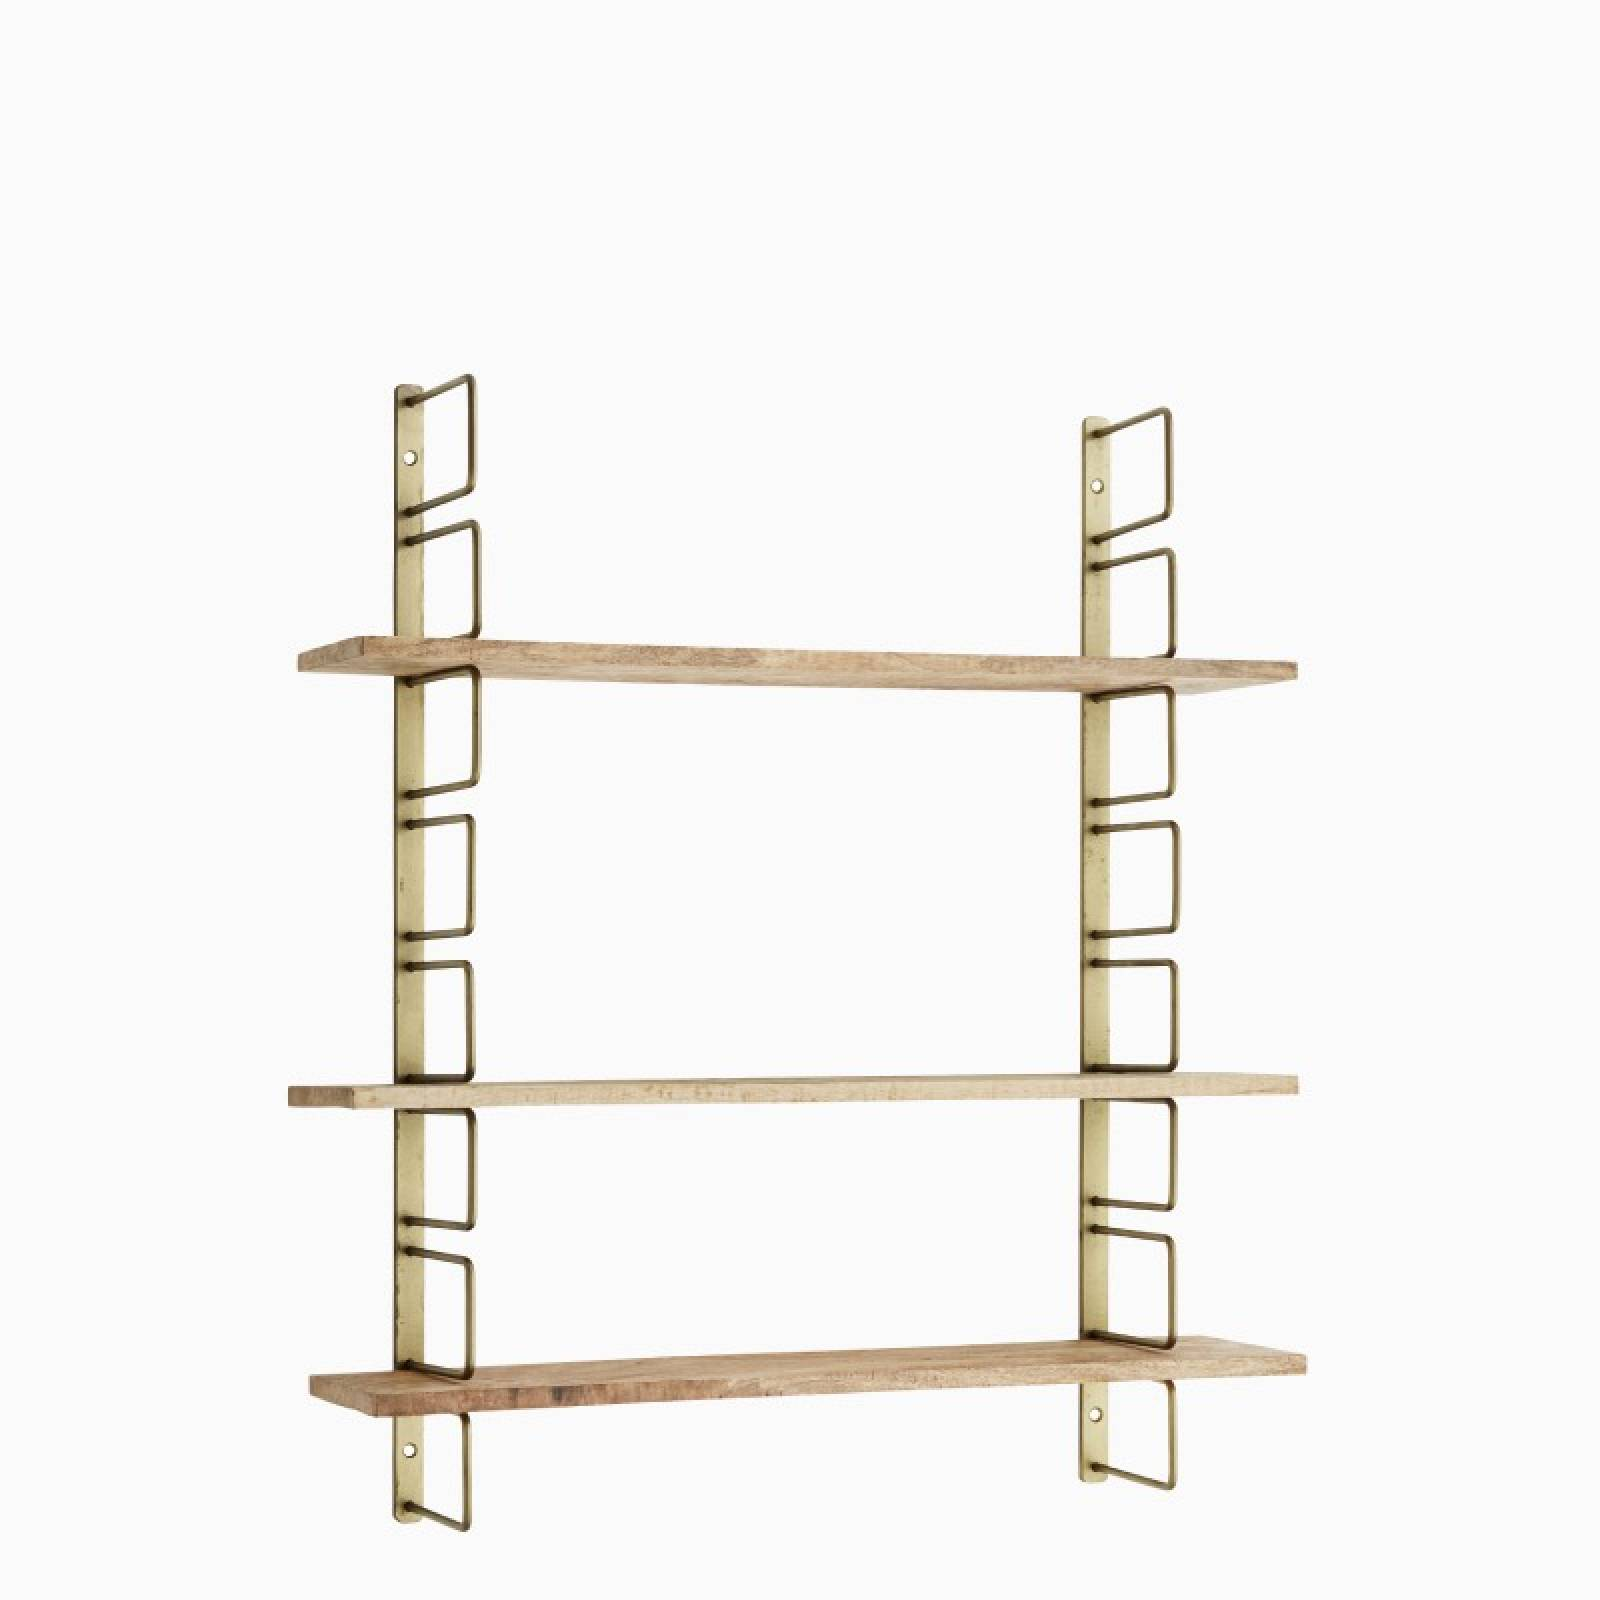 Brass Shelving Unit With 3 Adjustable Wooden Shelves